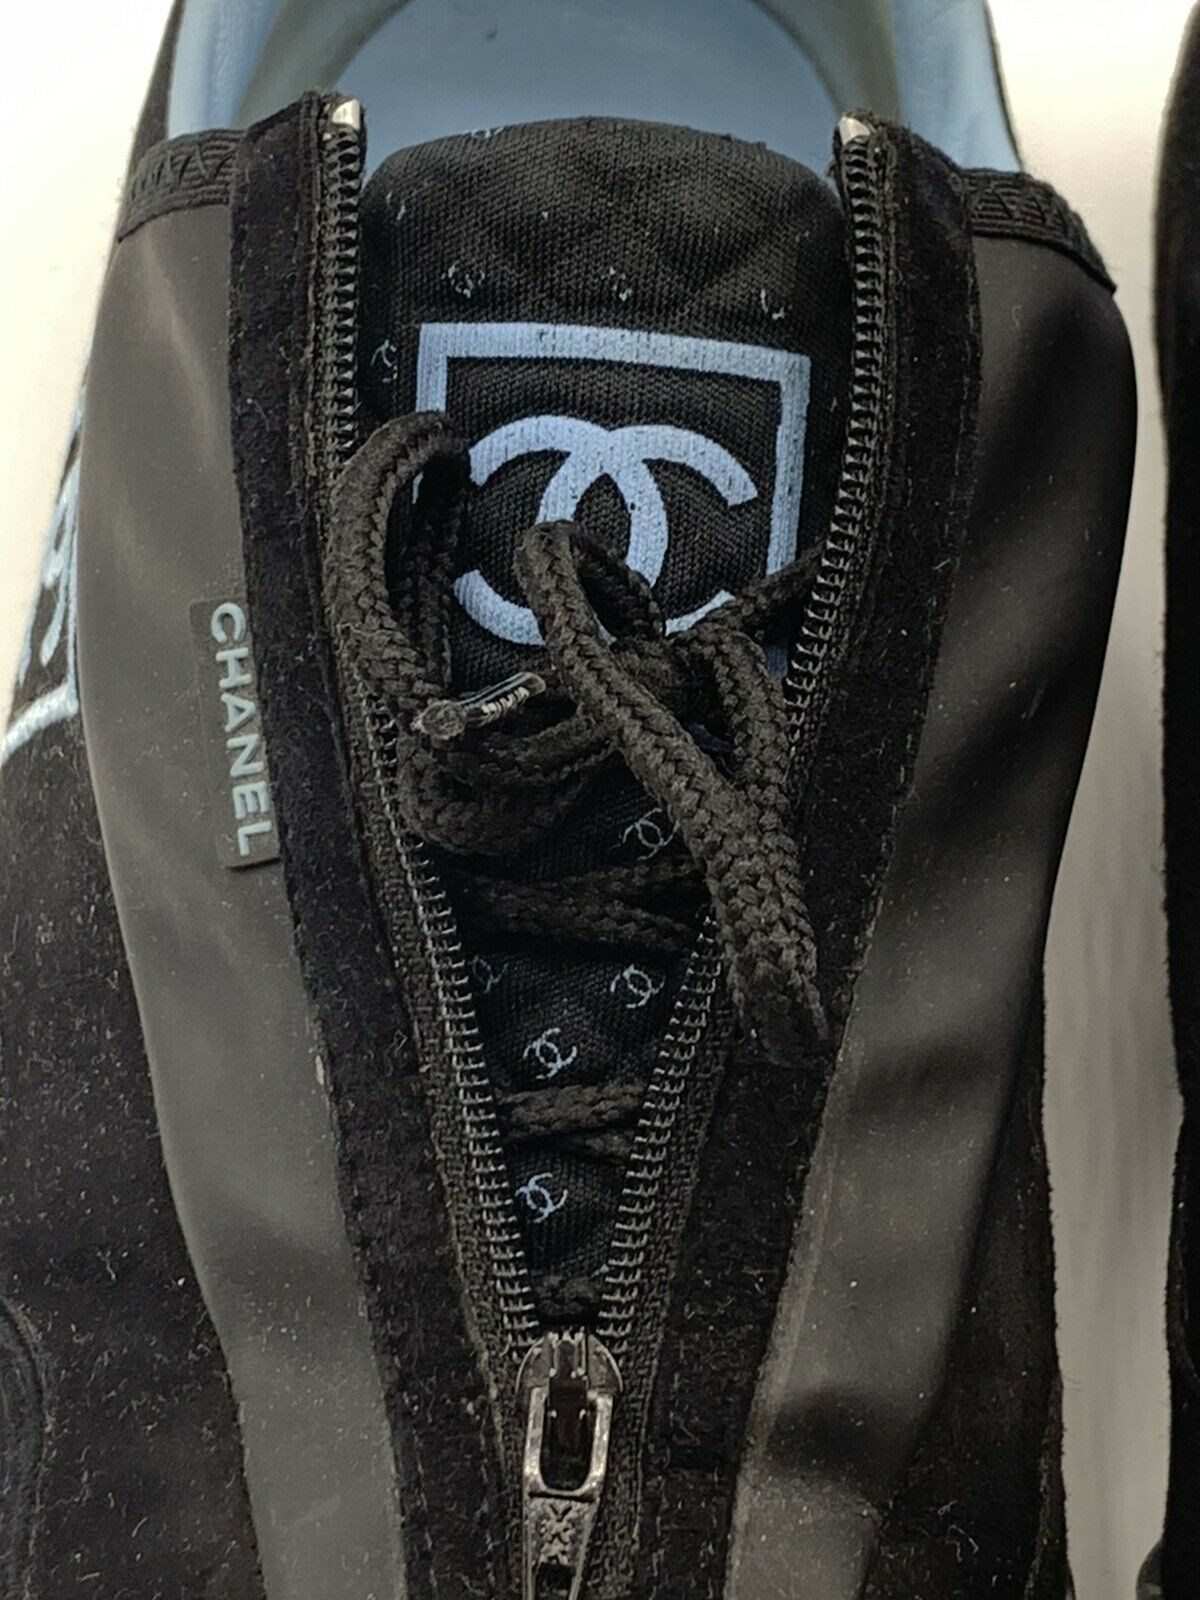 Chanel Sneakers - image 6